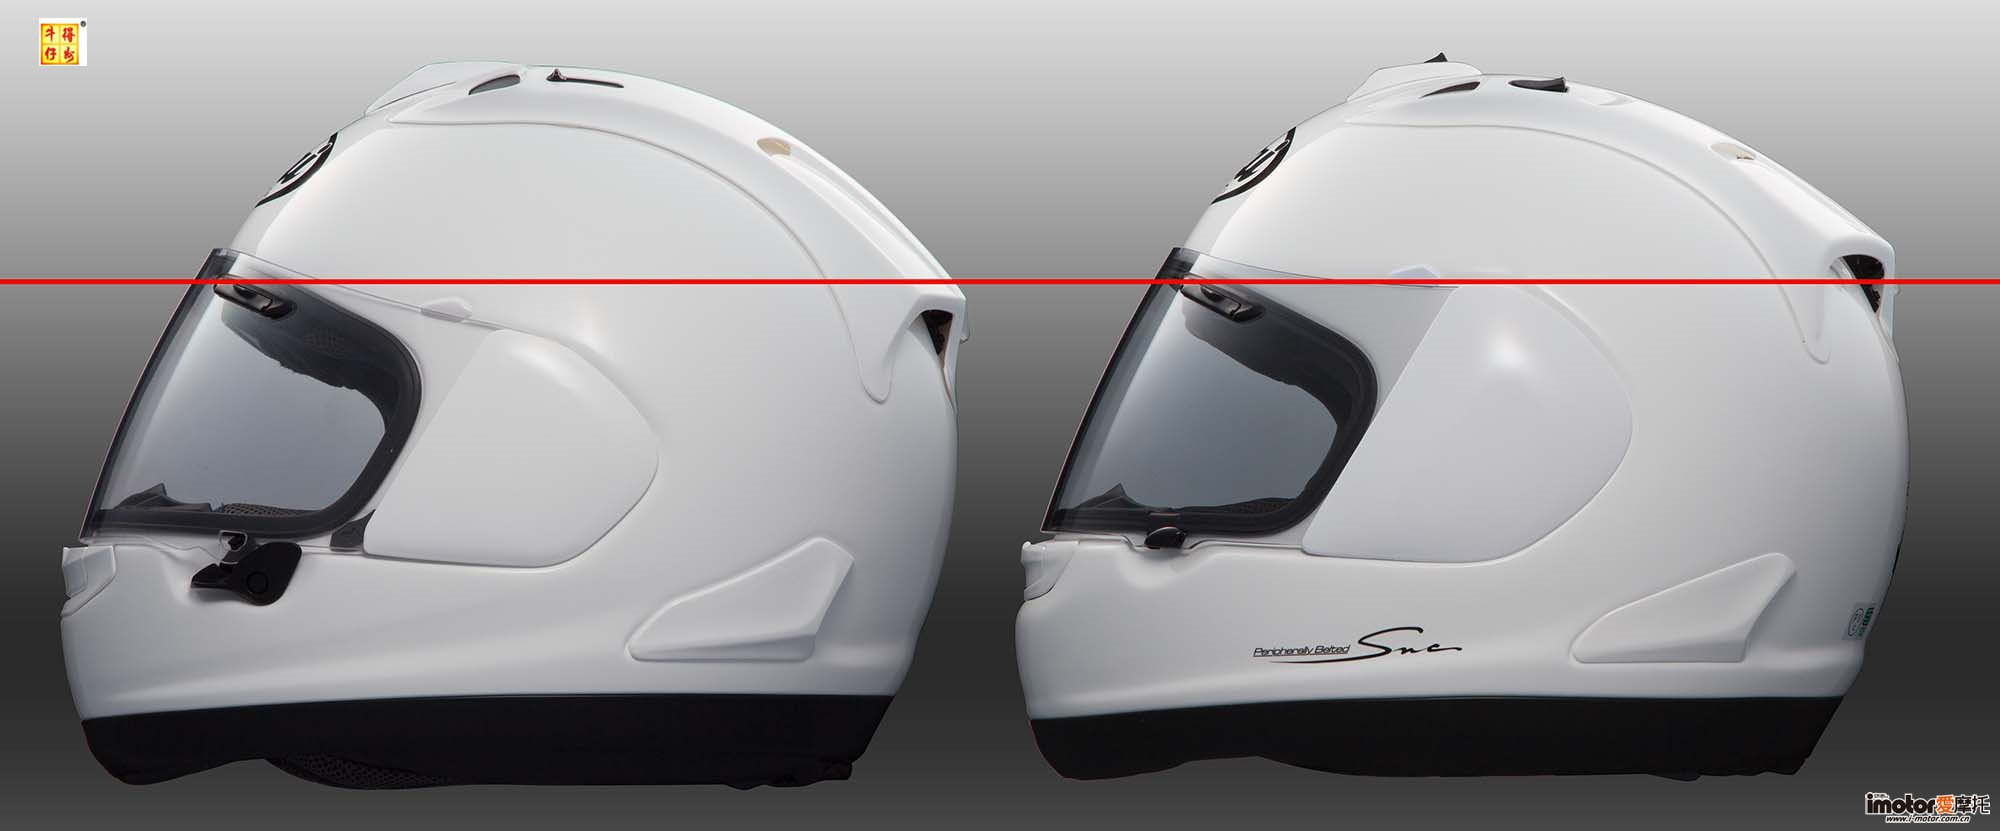 Arai-Corsair-X-helmet-review-07.jpg